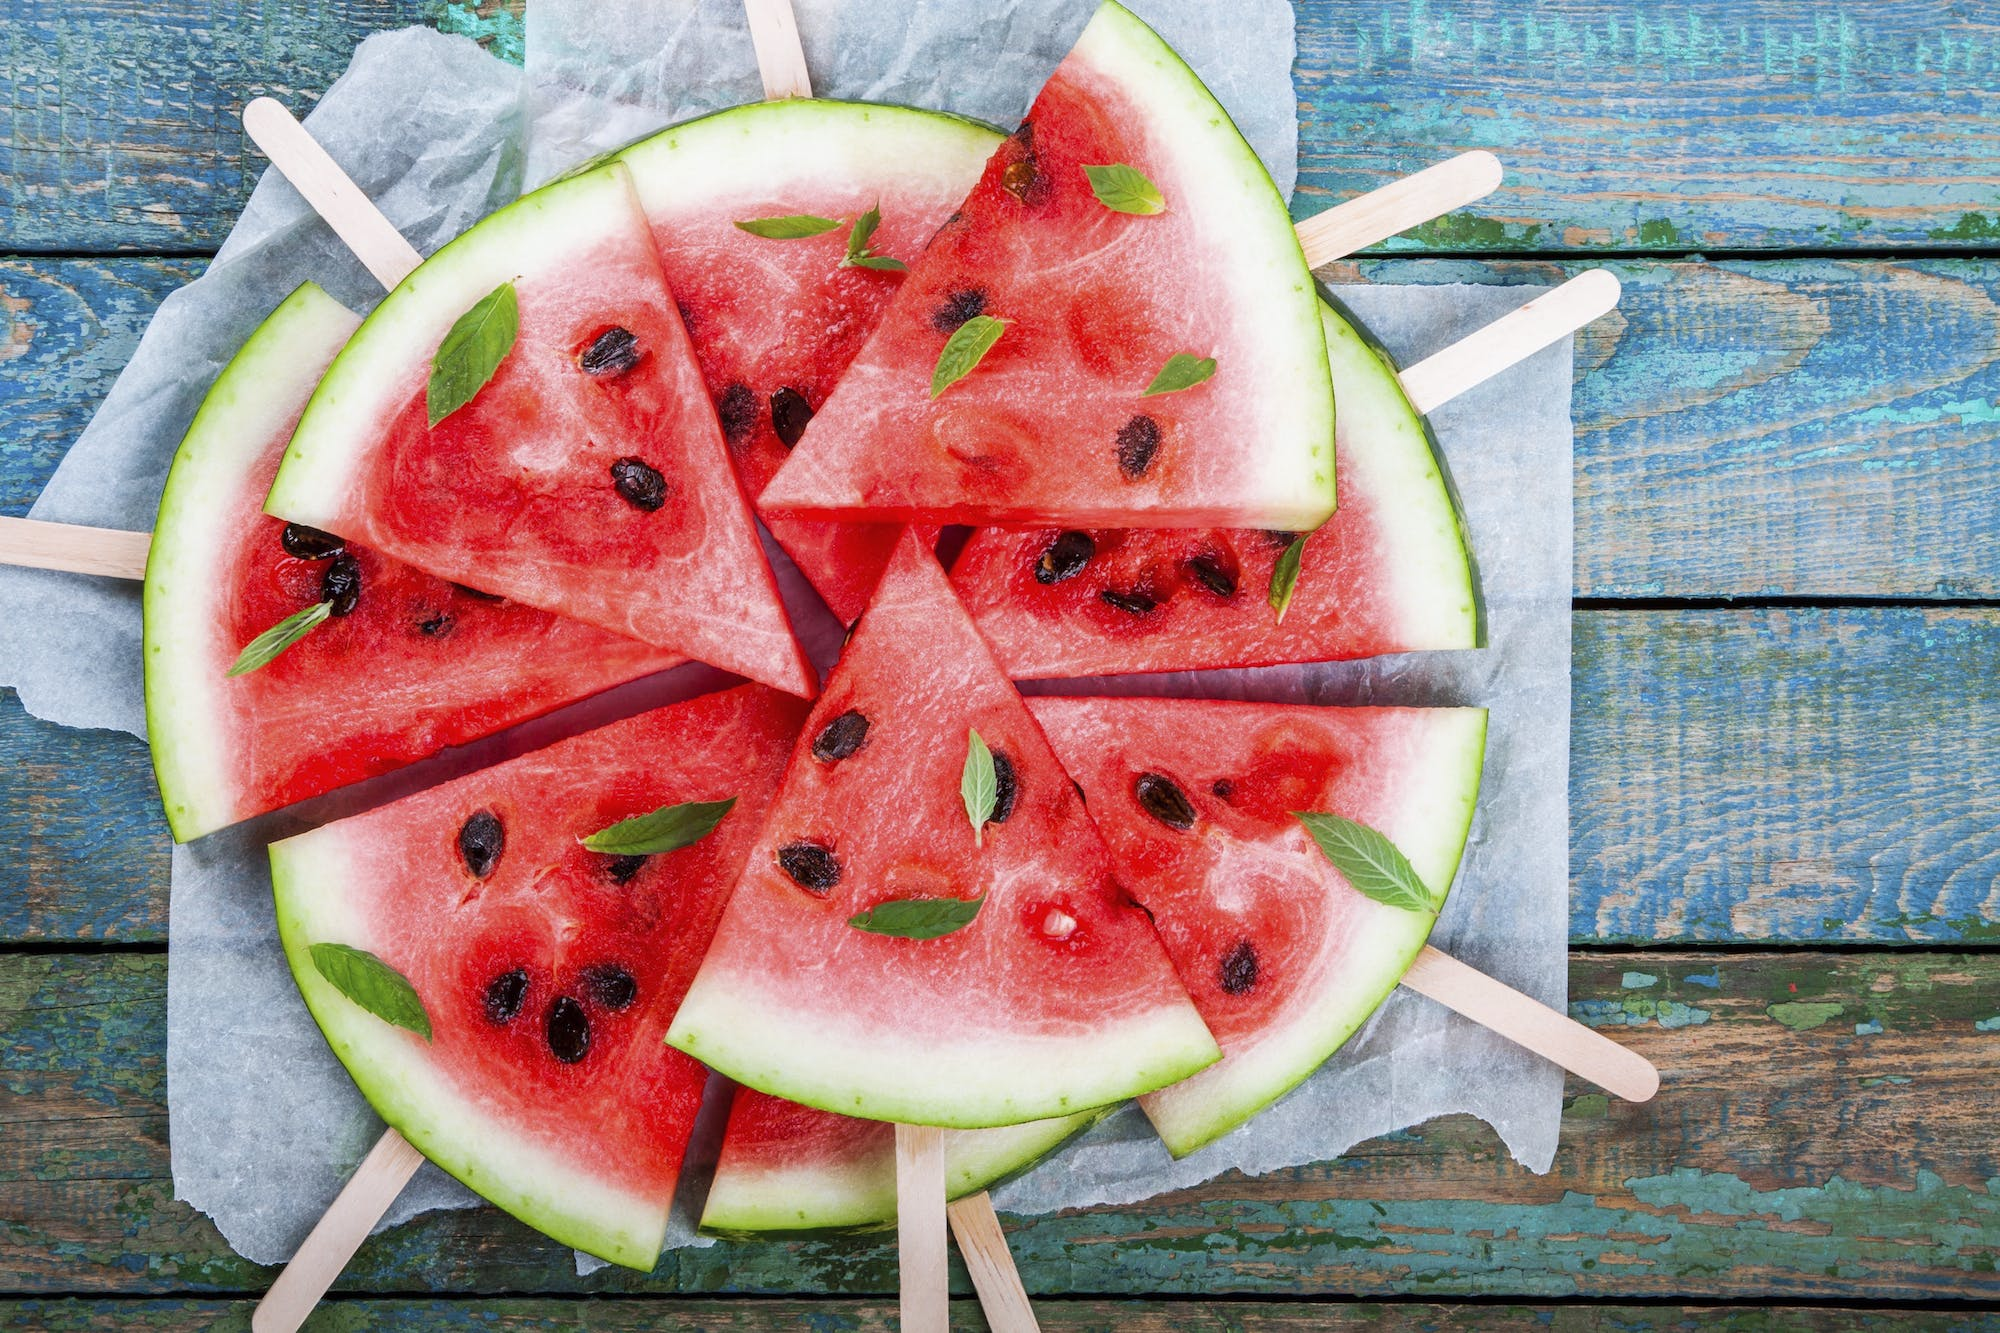 Watermelon: More than Just Water